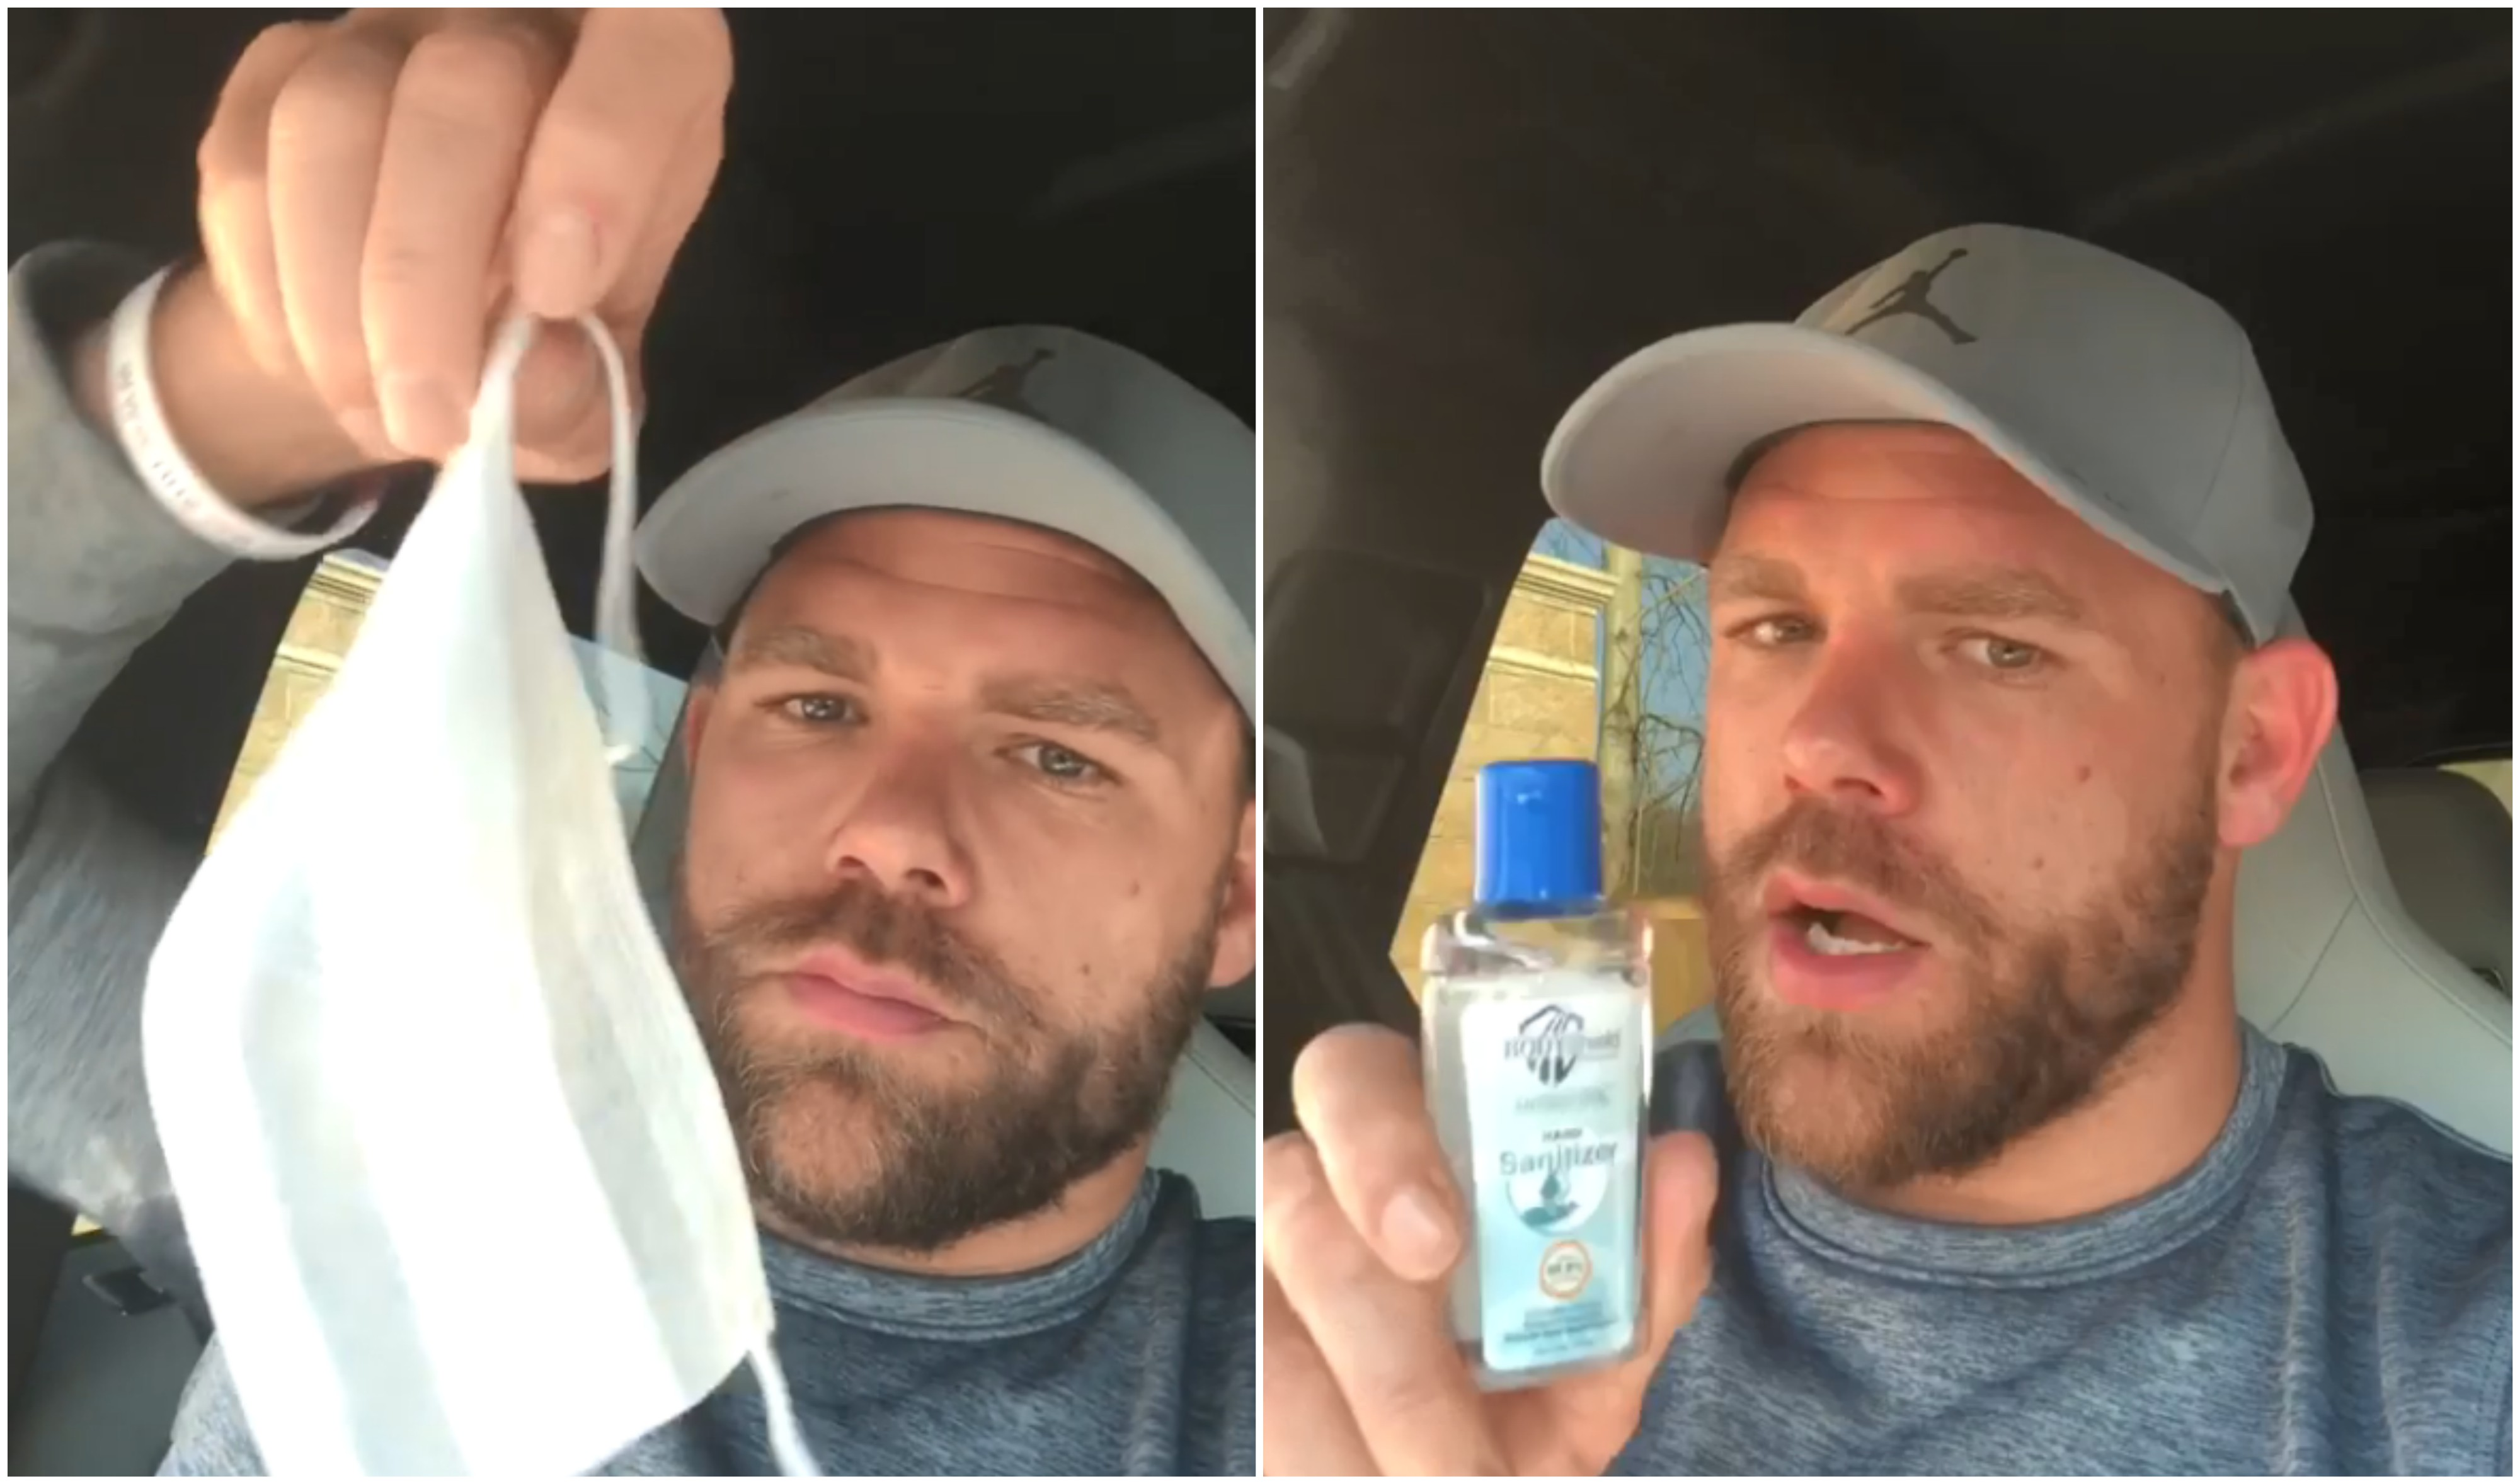 Billy Joe Saunders blasts shopkeeper for selling hand sanitizer and facemasks at exorbitant price - Billy Joe Saunders